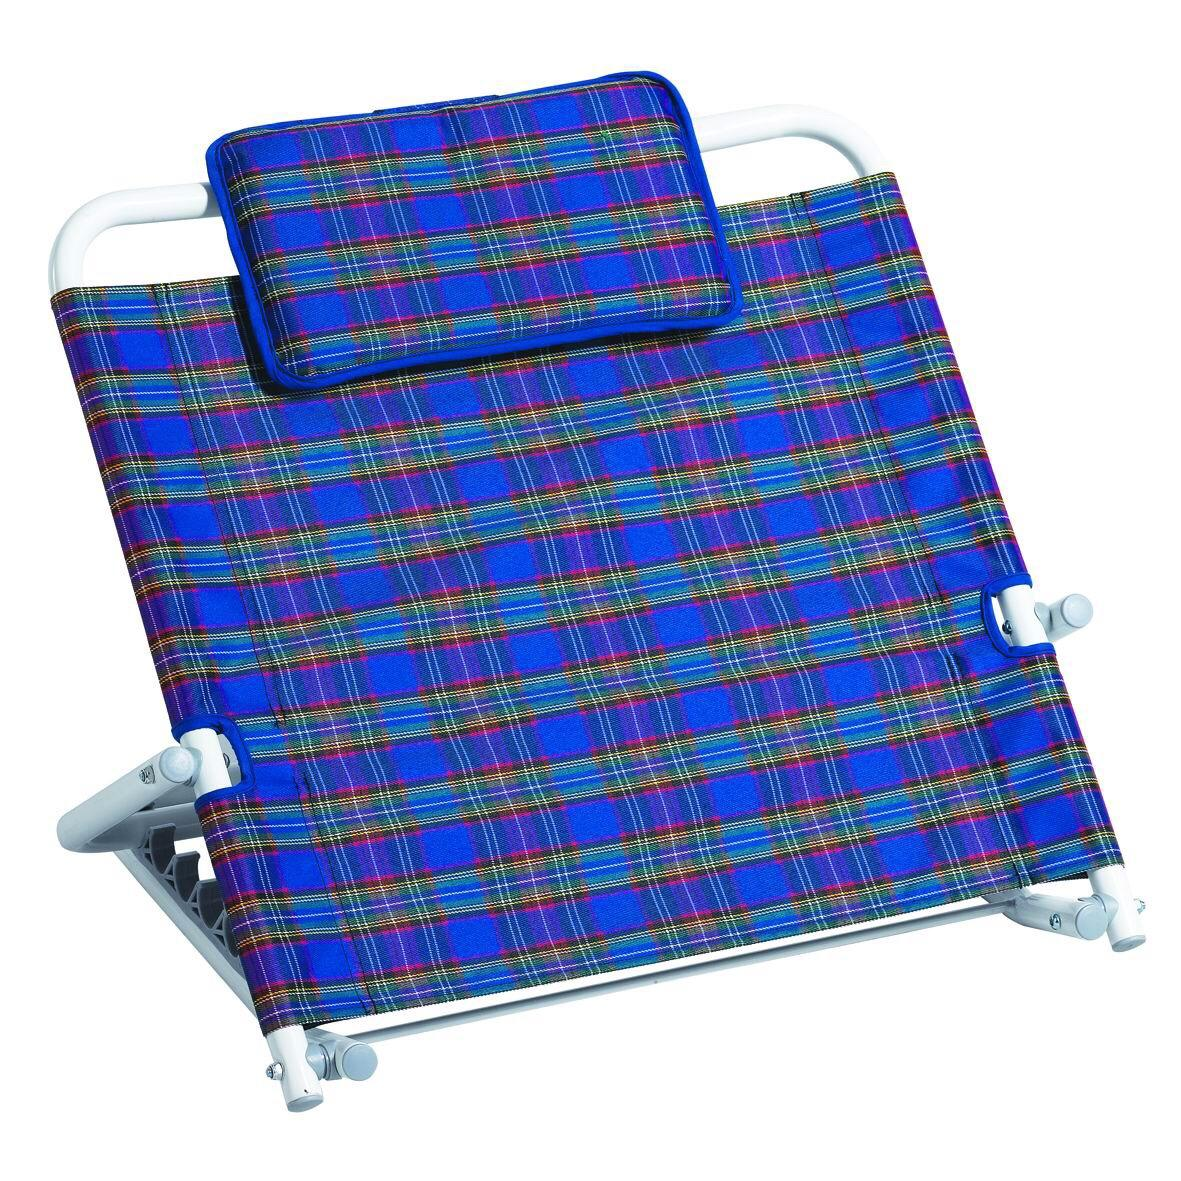 steel powder coated frame hospital bed adjustable steel backrest